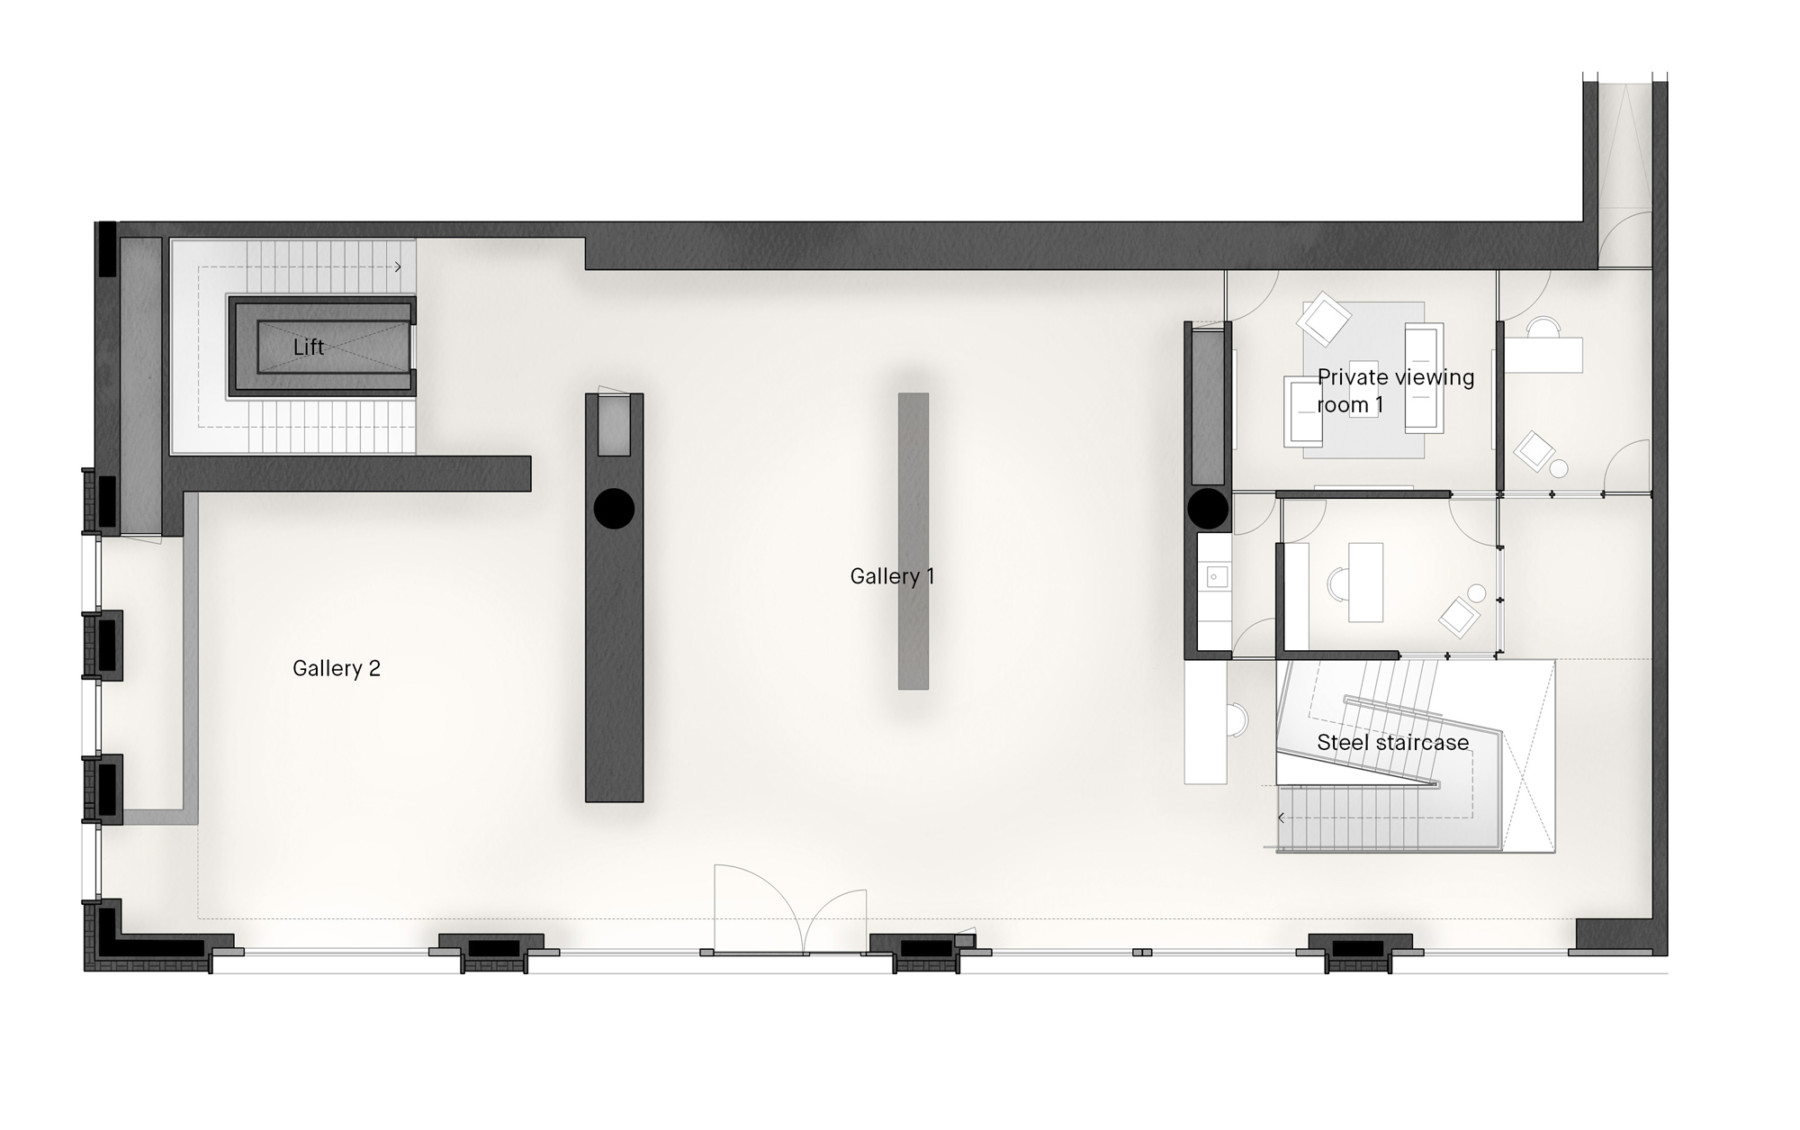 Pace-gallery-hanover-square-jamie-fobert-architects-ground-plan-2